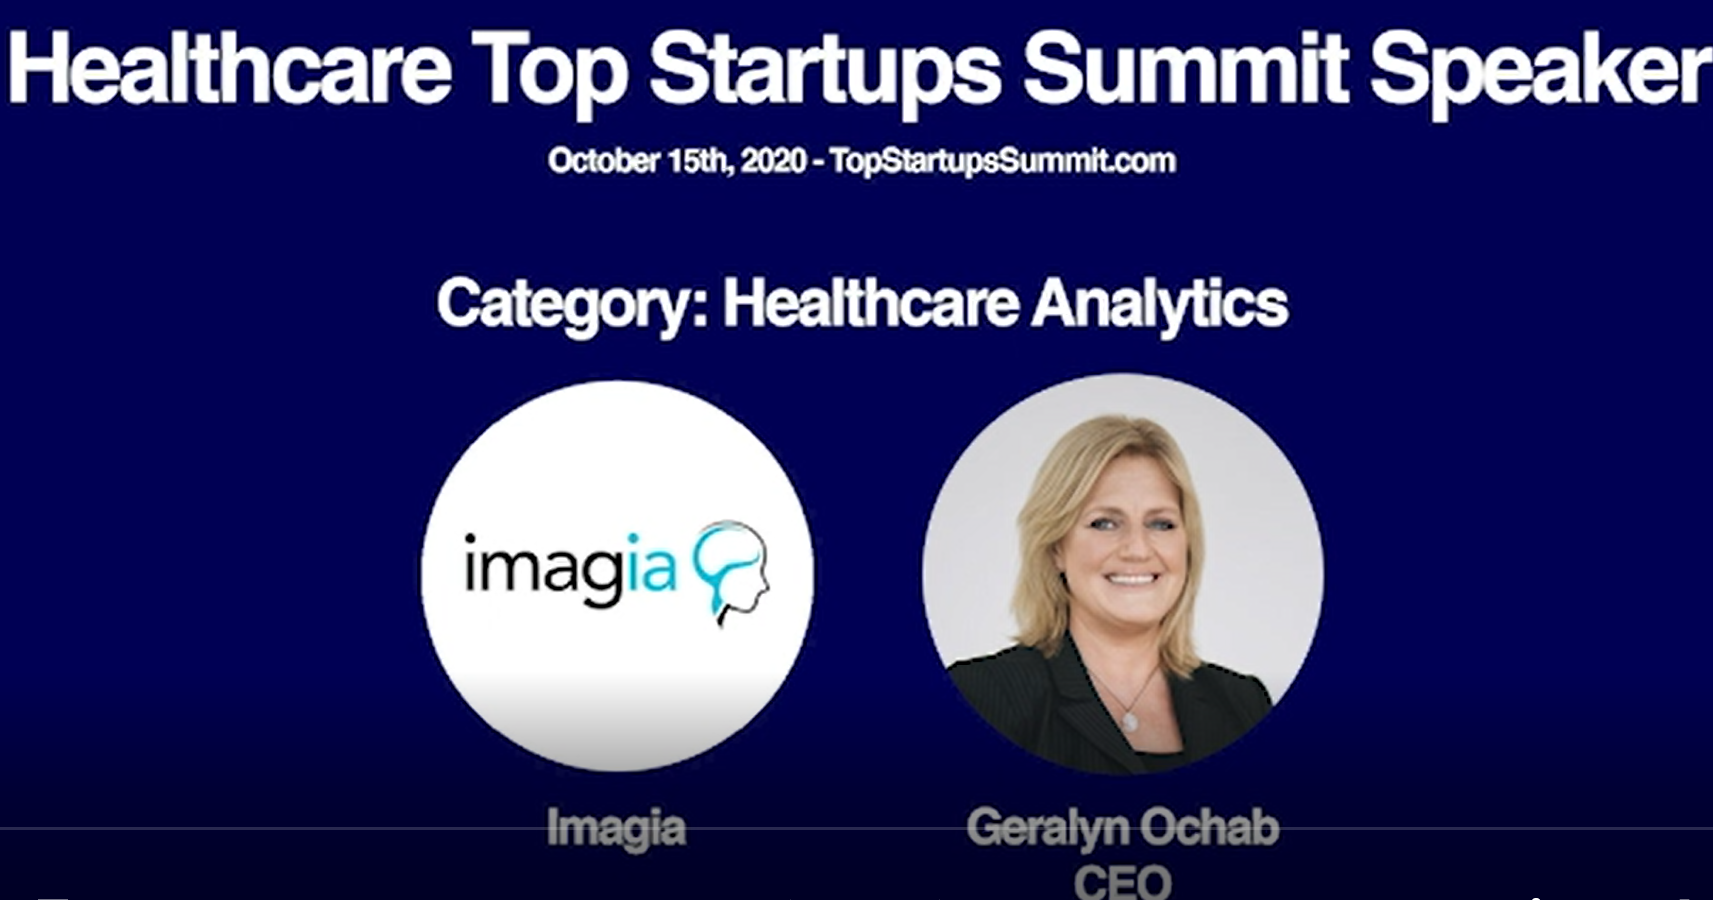 Healthcare Top Startups Summit Recognizes Imagia as One of the Top Healthcare Analytics Startups: Interview with Geralyn Ochab, CEO, Imagia